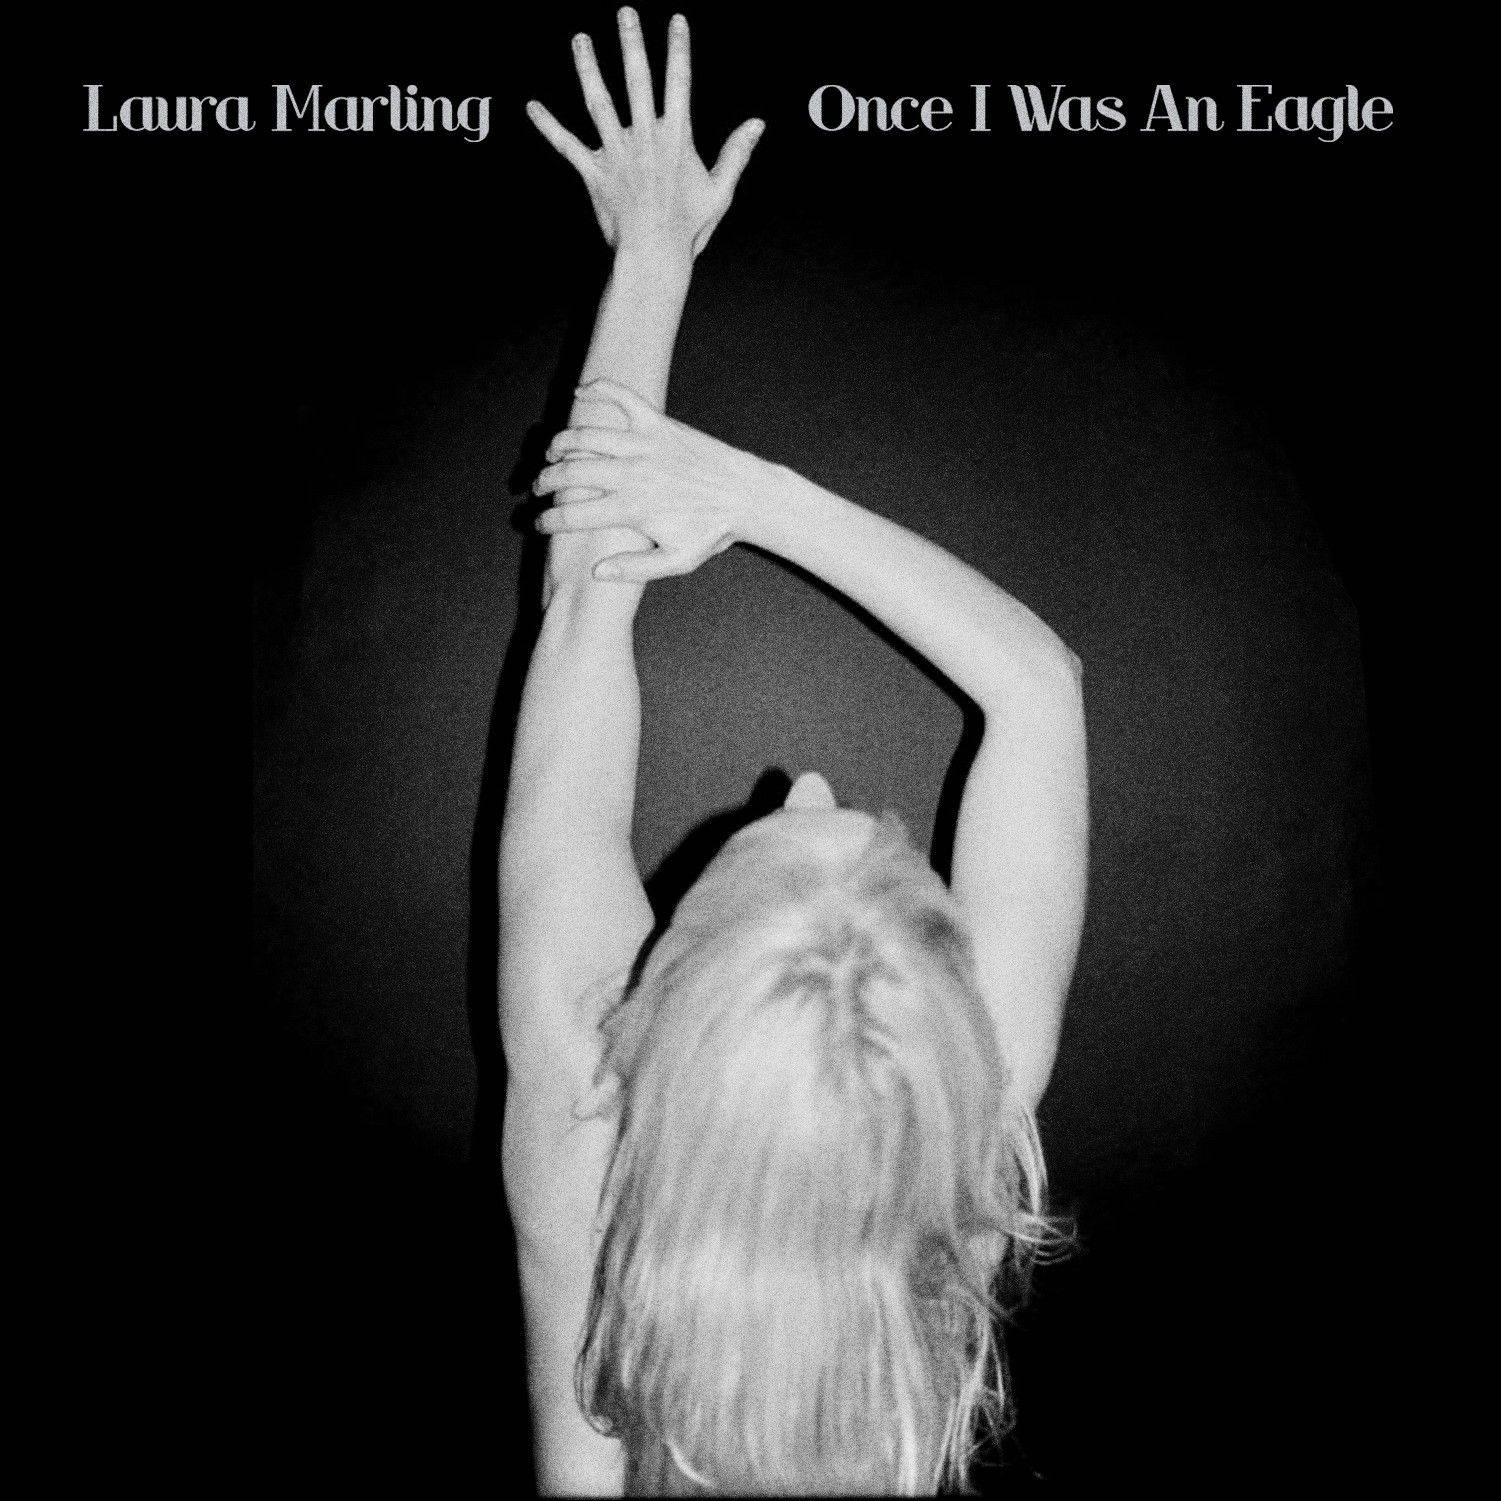 """Once I Was an Eagle"" by Laura Marling"